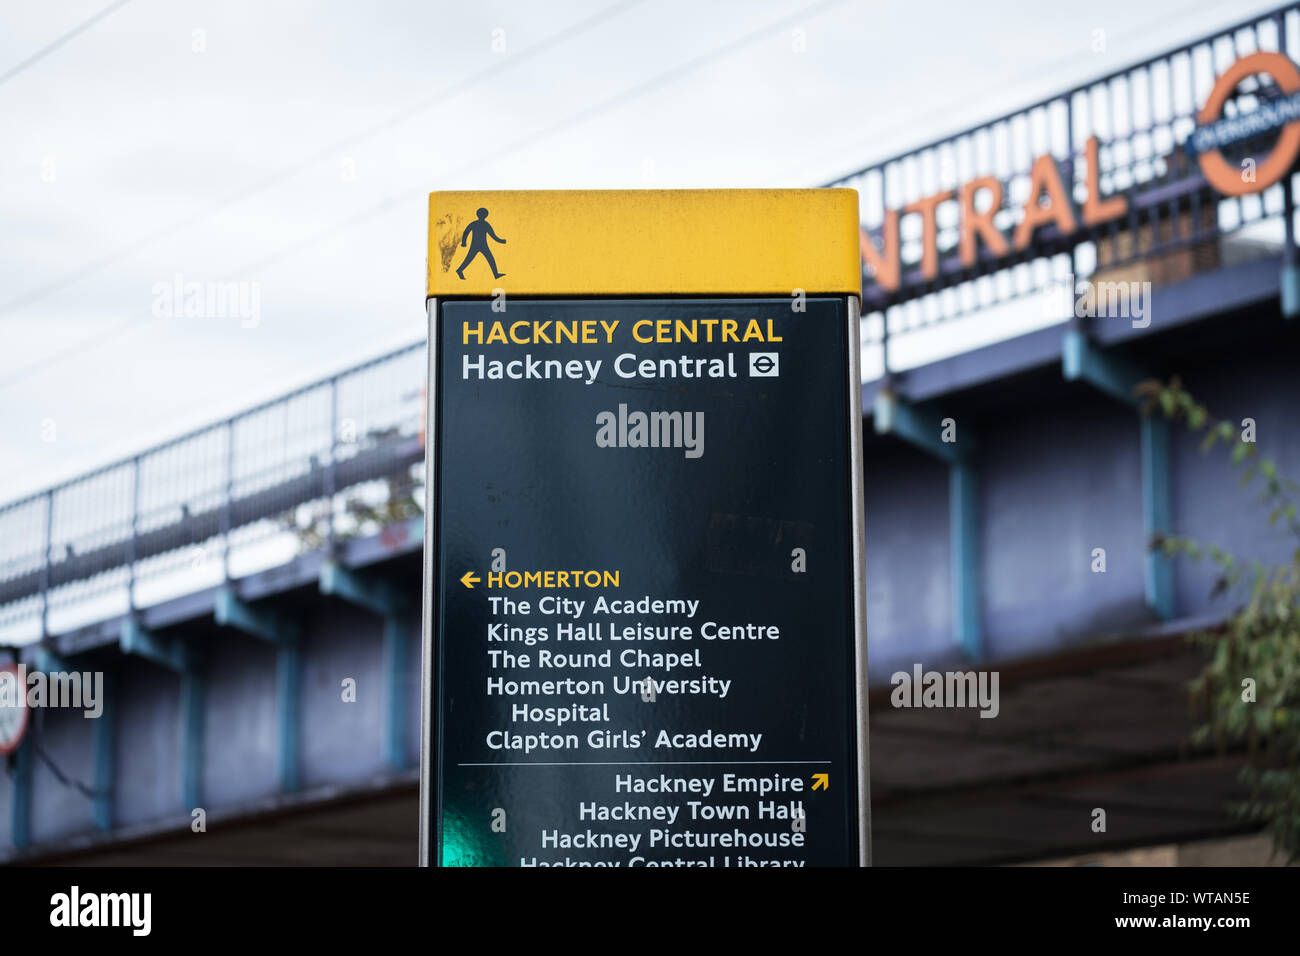 Pedestrian signage at Hackney Central Overground Station for Homerton, Hackney Empire and Hackney Town Hall. East London, UK Stock Photo